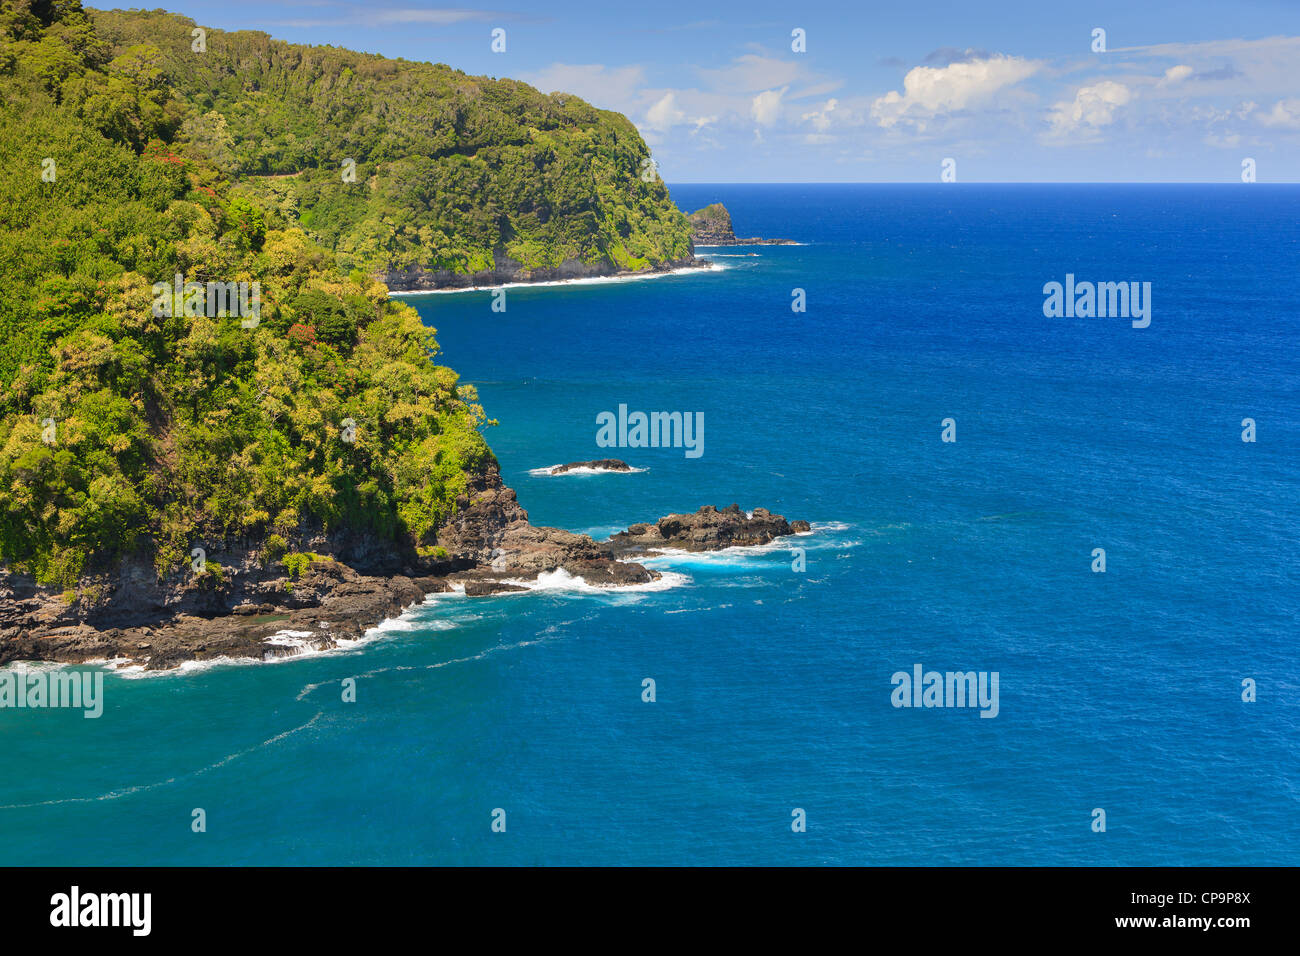 Ocean view from the road to Hana, Maui, Hawaii - Stock Image